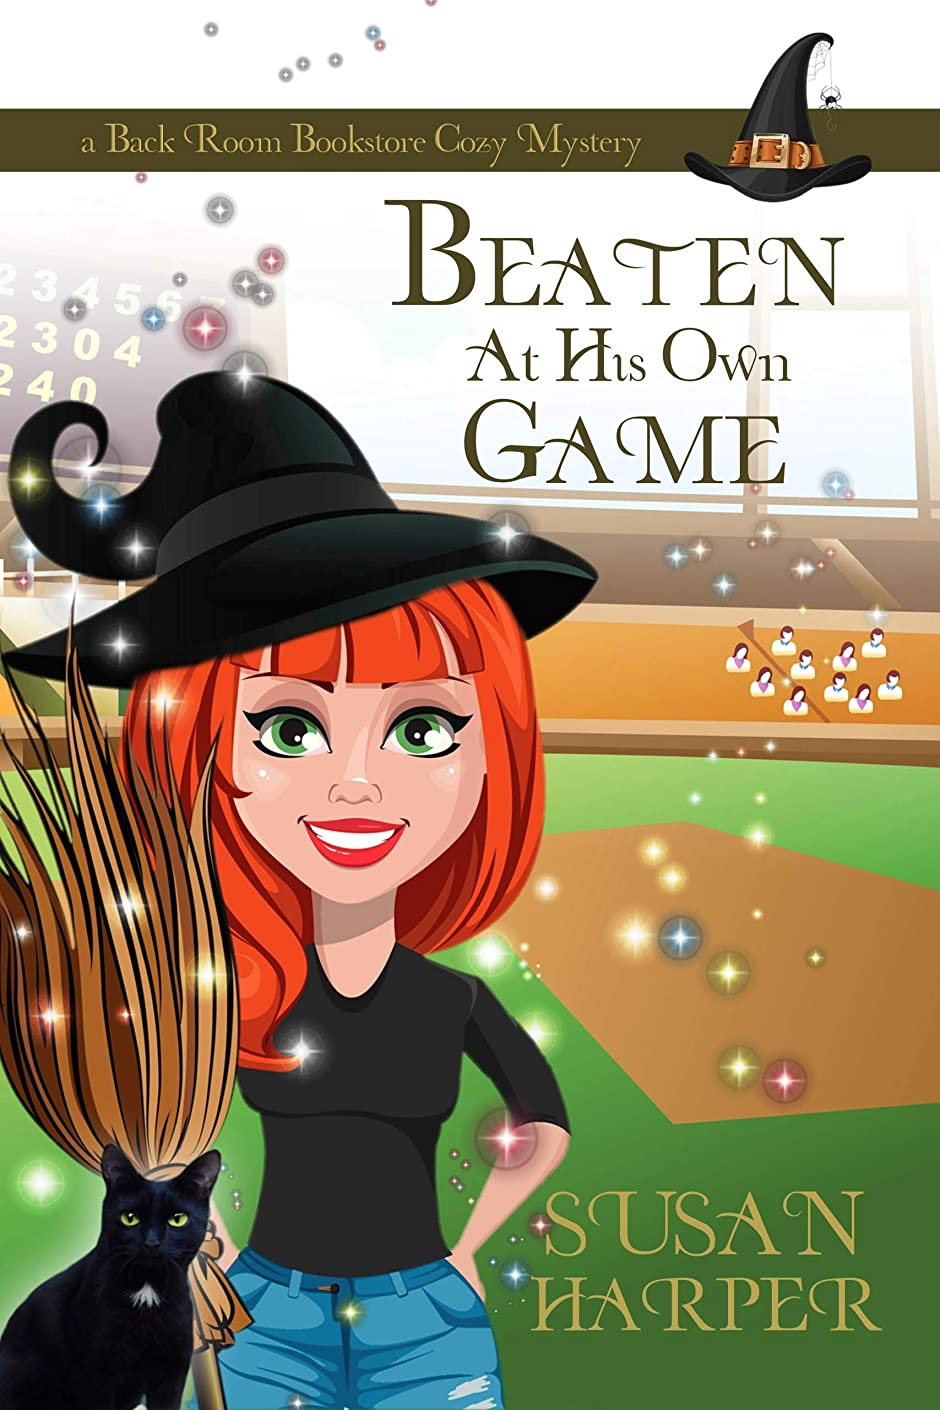 制裁マニアックディレクトリBeaten at His Own Game (Back Room Bookstore Cozy Mystery Book 9) (English Edition)